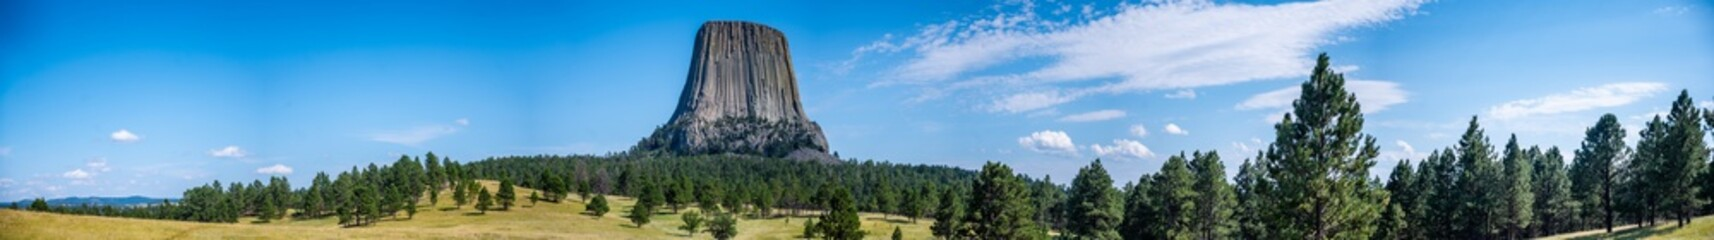 panoramic of Devil's Tower National Monument in Crook County Wyoming